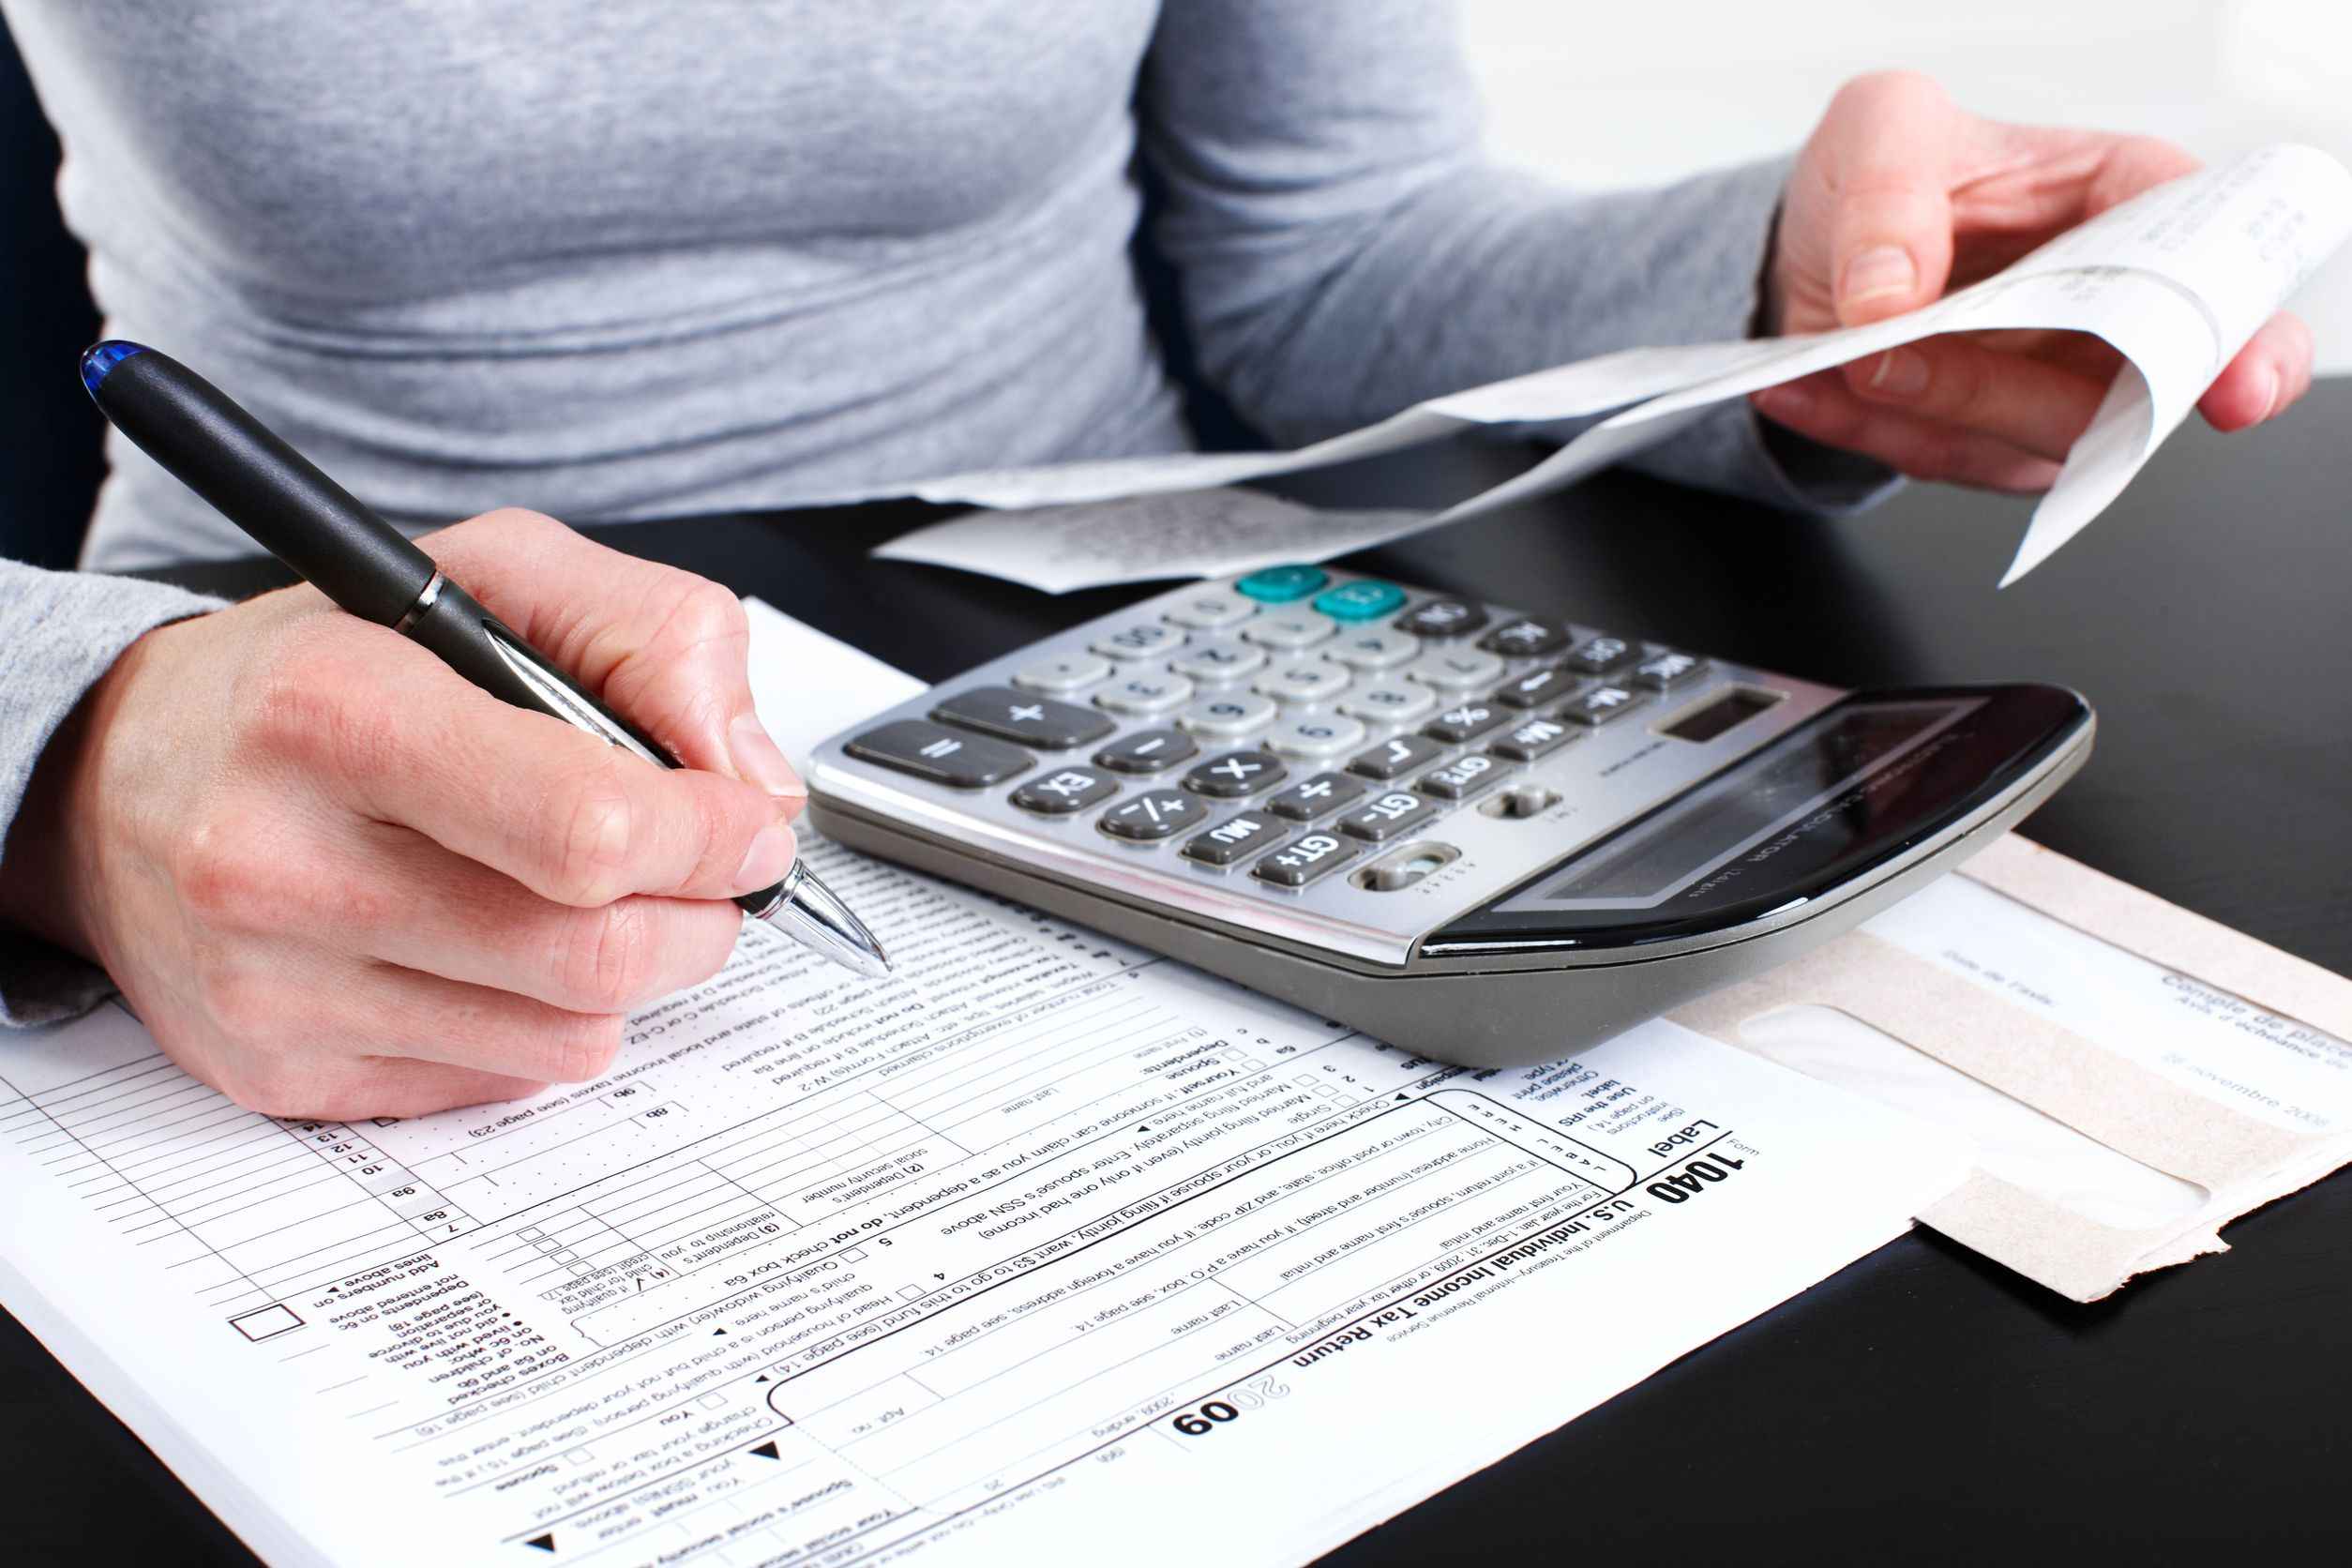 Get Control of Your Taxes With Help From Professionals